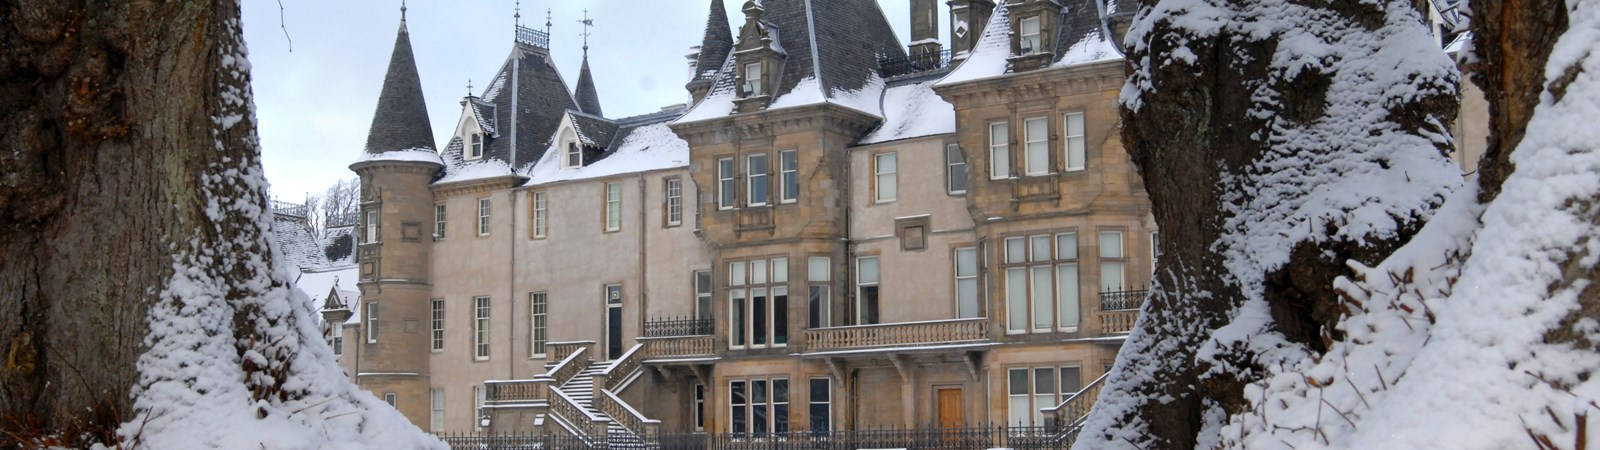 Callendar House and Park, Falkirk in the snow